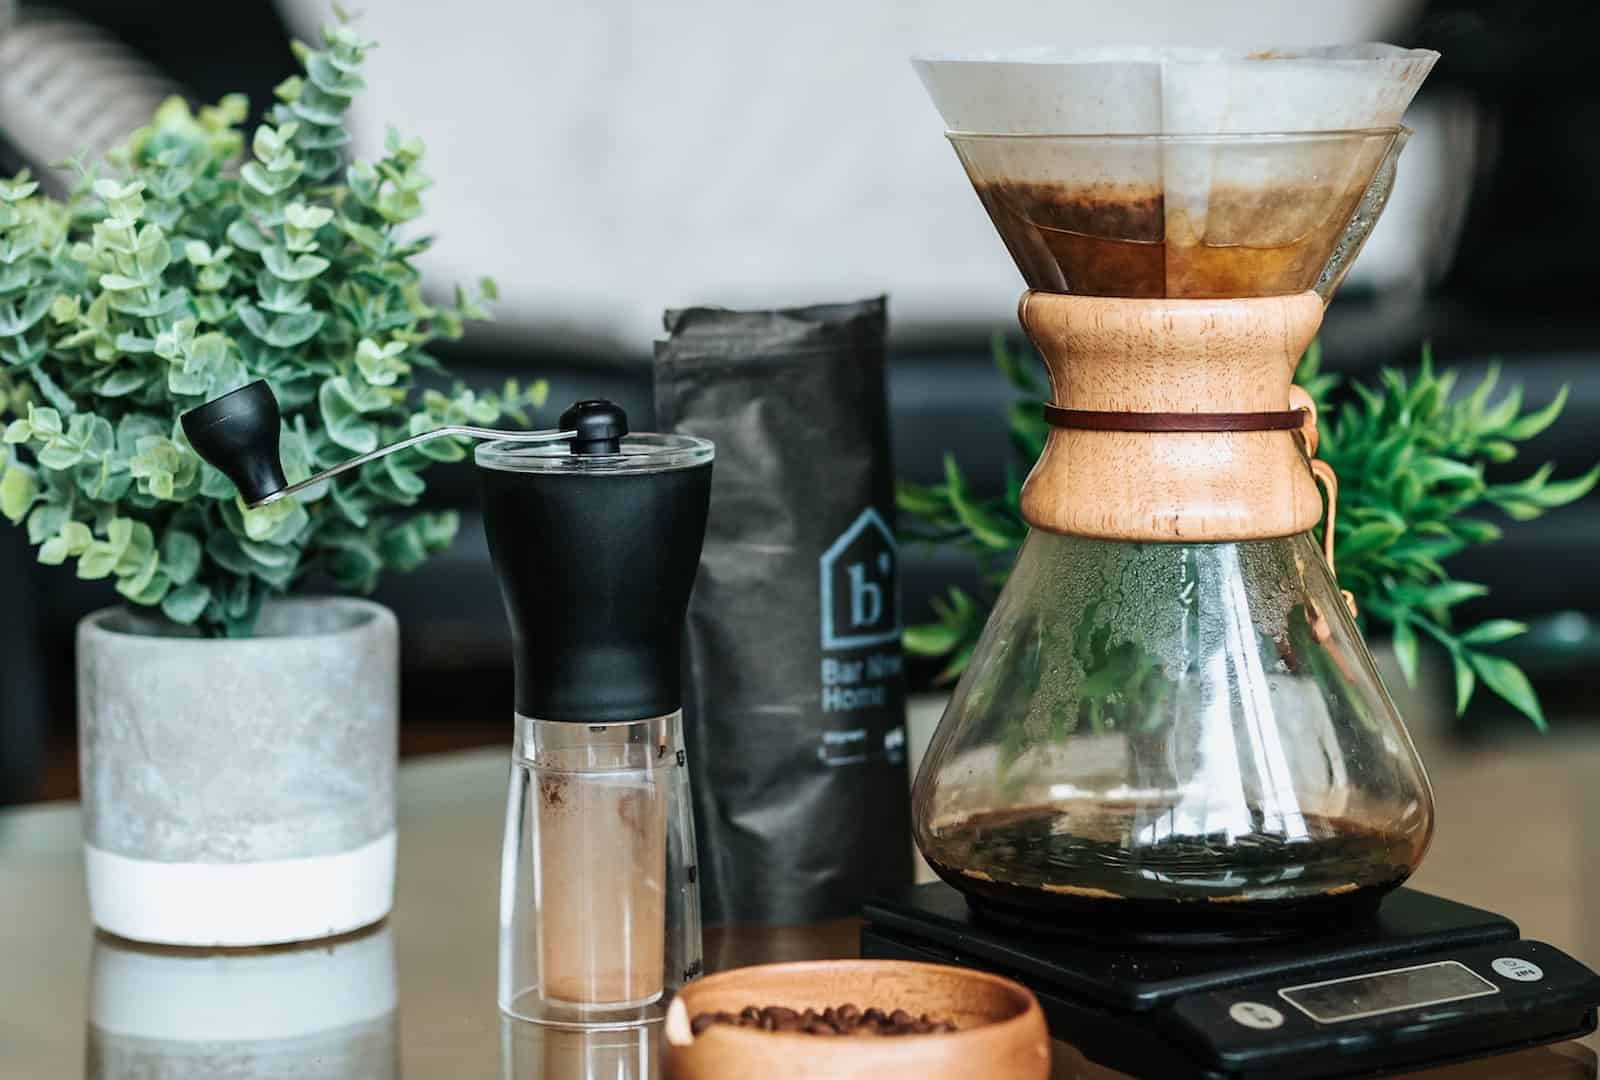 chemex pour over coffee maker with accessories